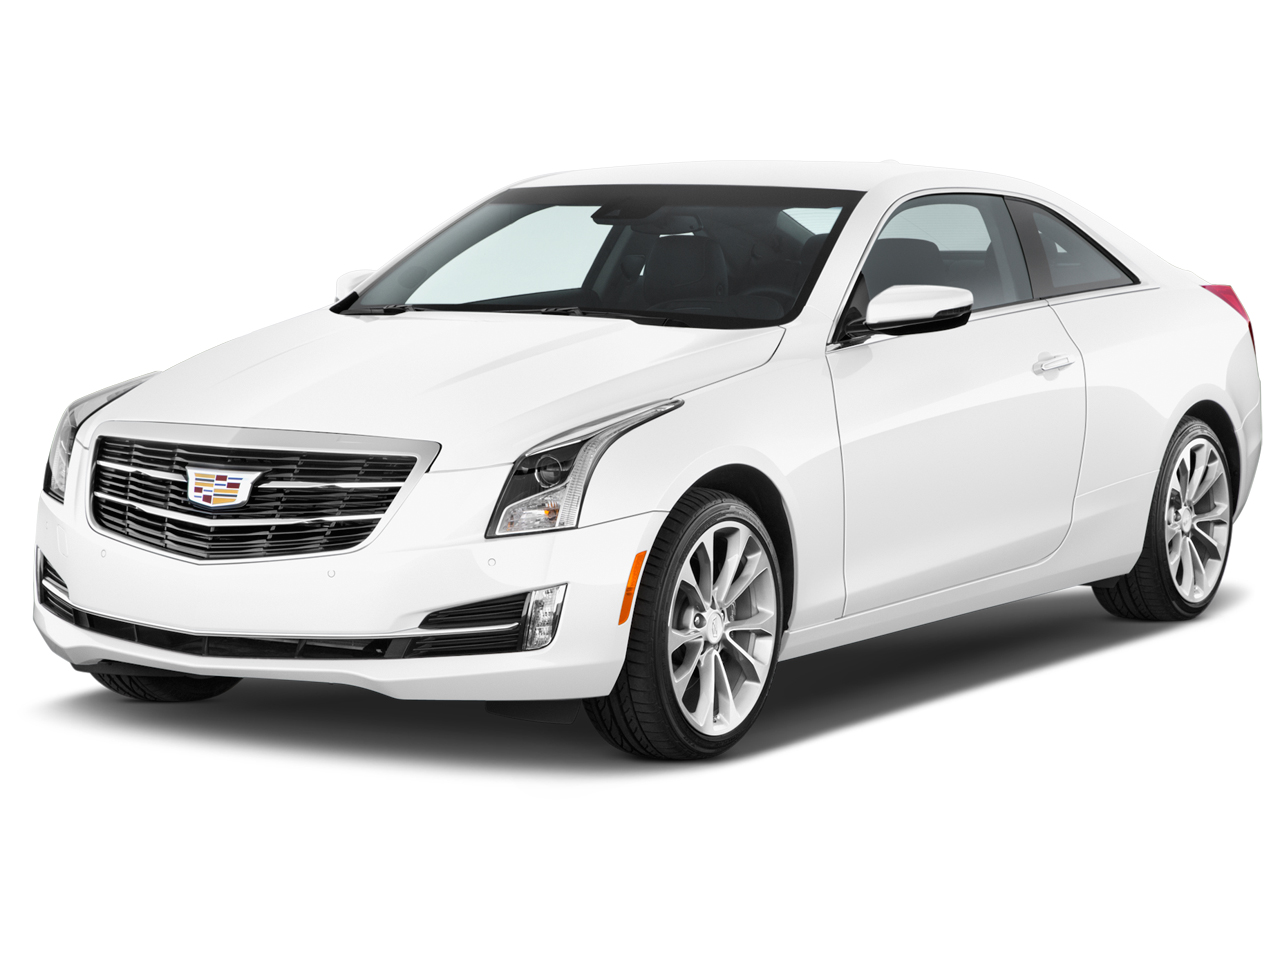 2017 cadillac ats coupe review ratings specs prices and photos the car connection. Black Bedroom Furniture Sets. Home Design Ideas